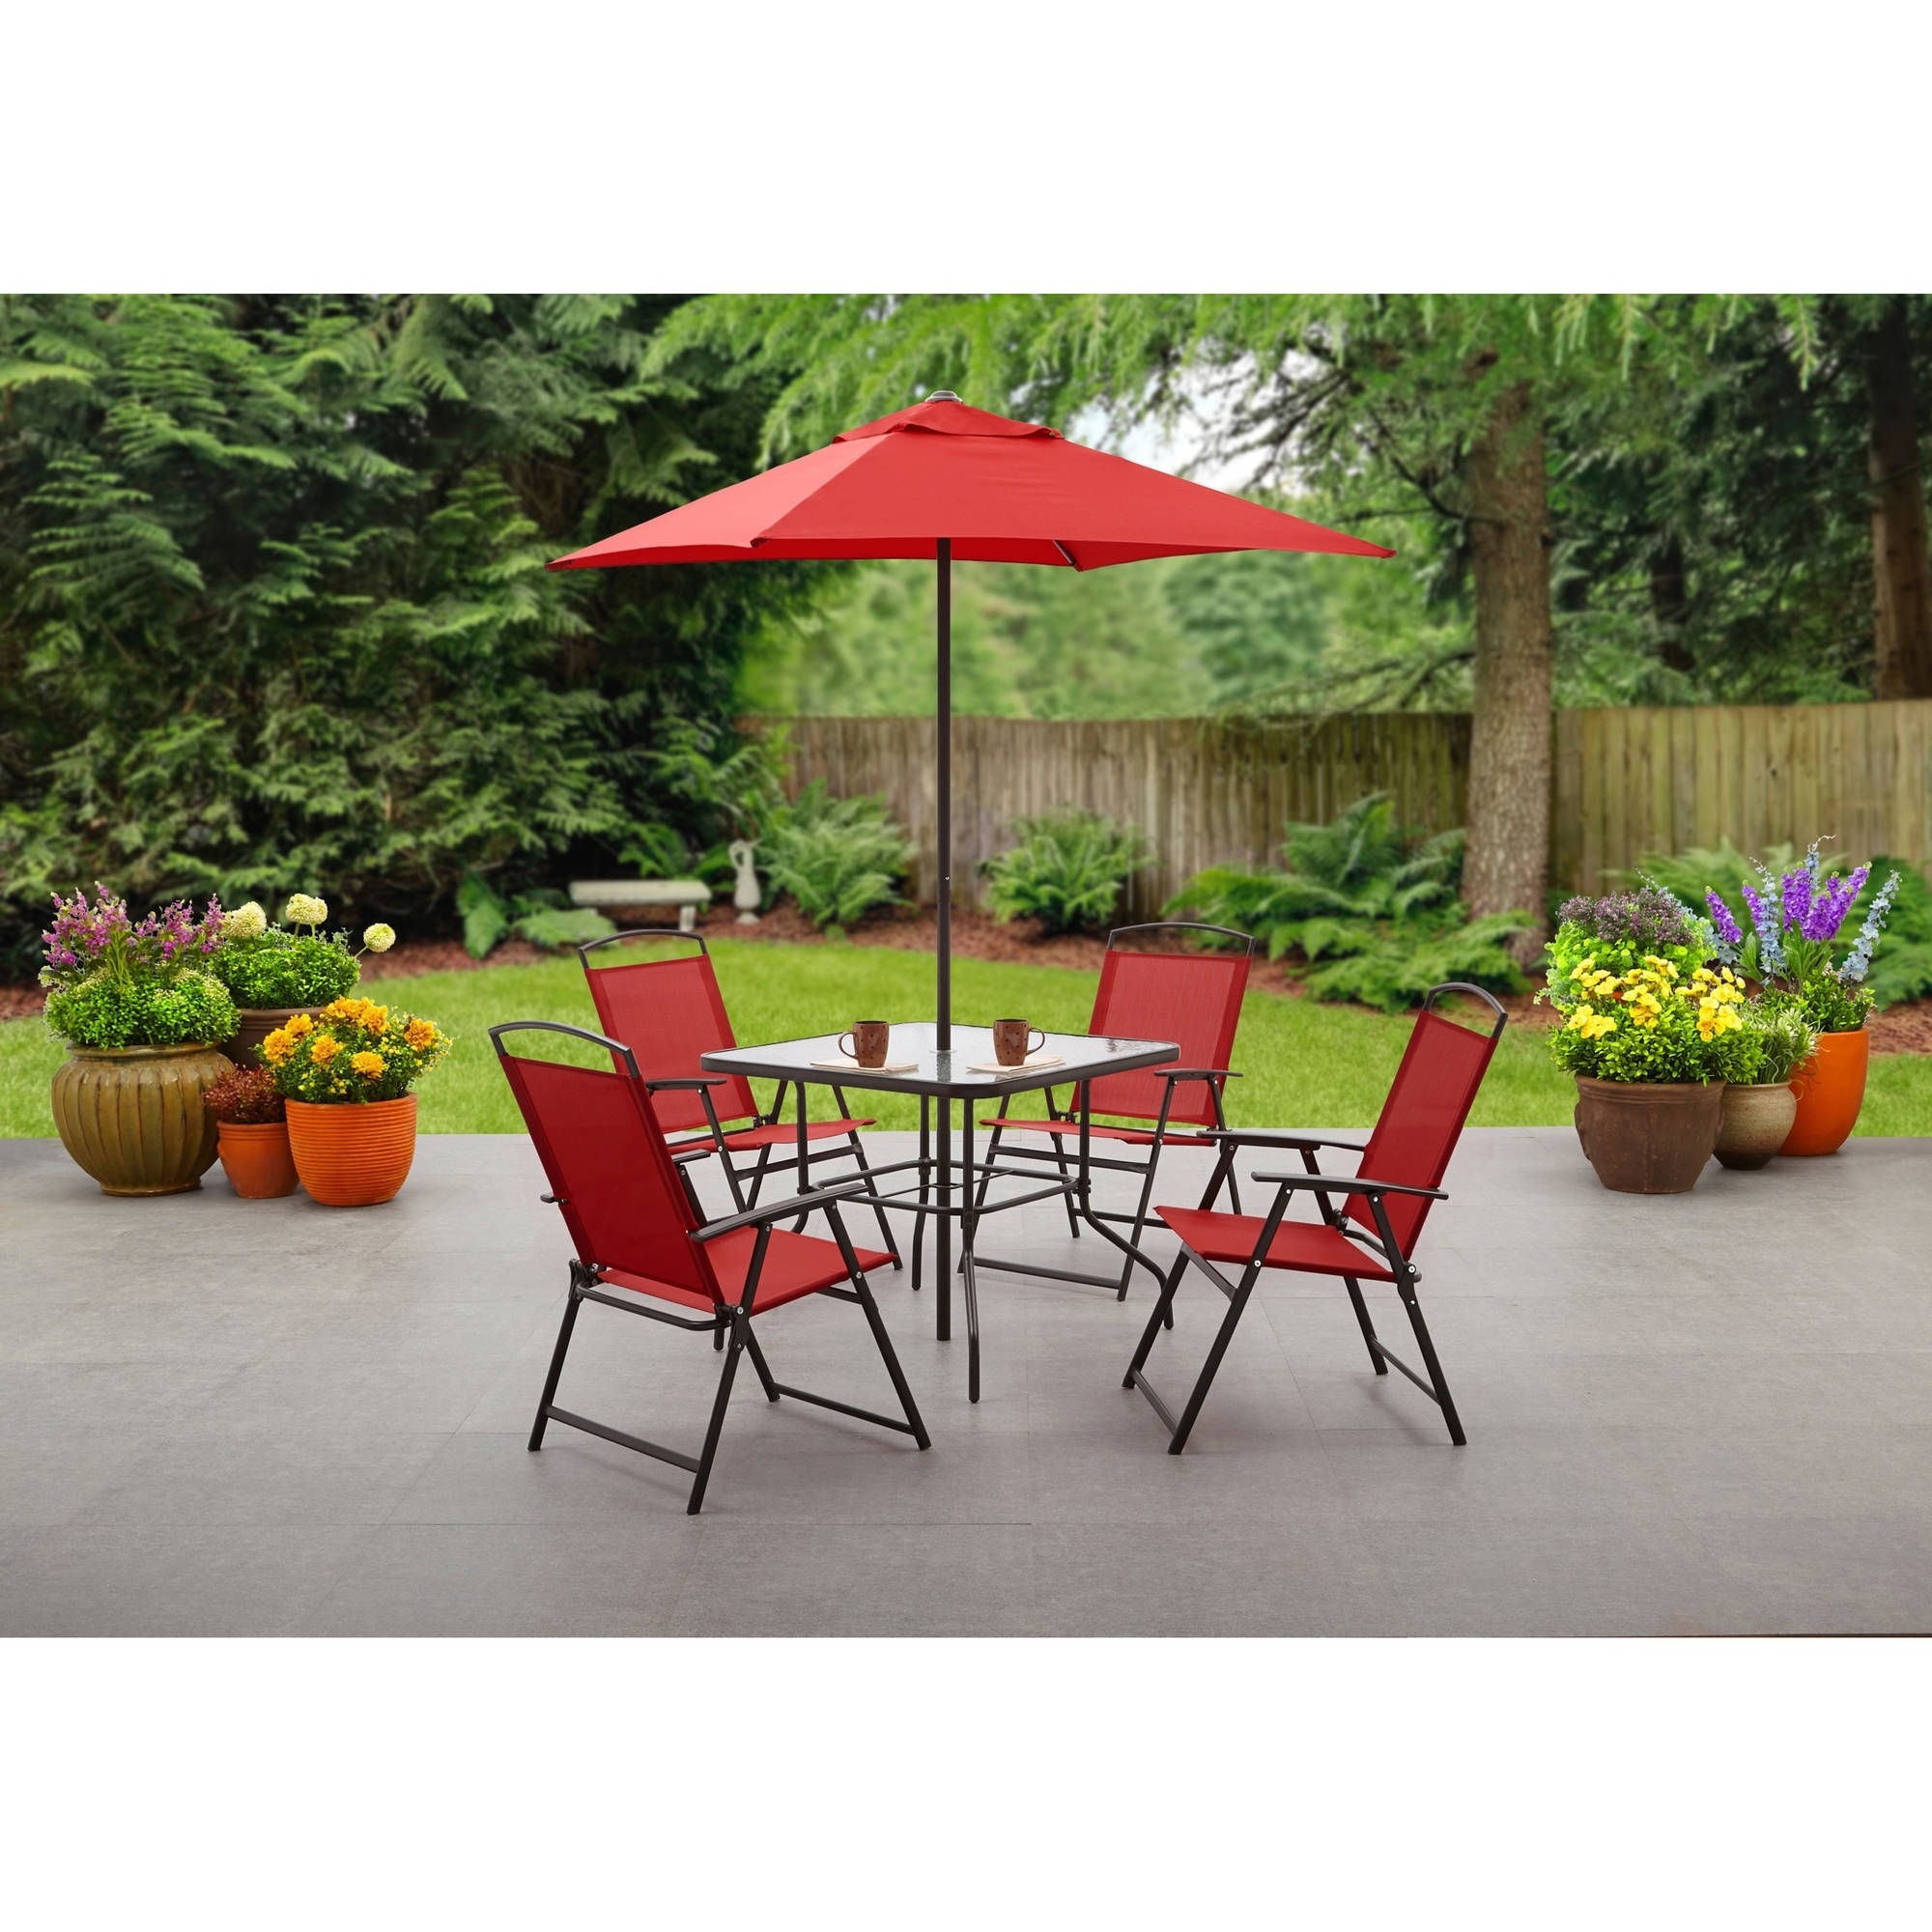 Fashionable Outdoor Dining Table And Chairs Sets With Regard To Mainstays Albany Lane 6 Piece Folding Dining Set, Multiple Colors (View 5 of 25)